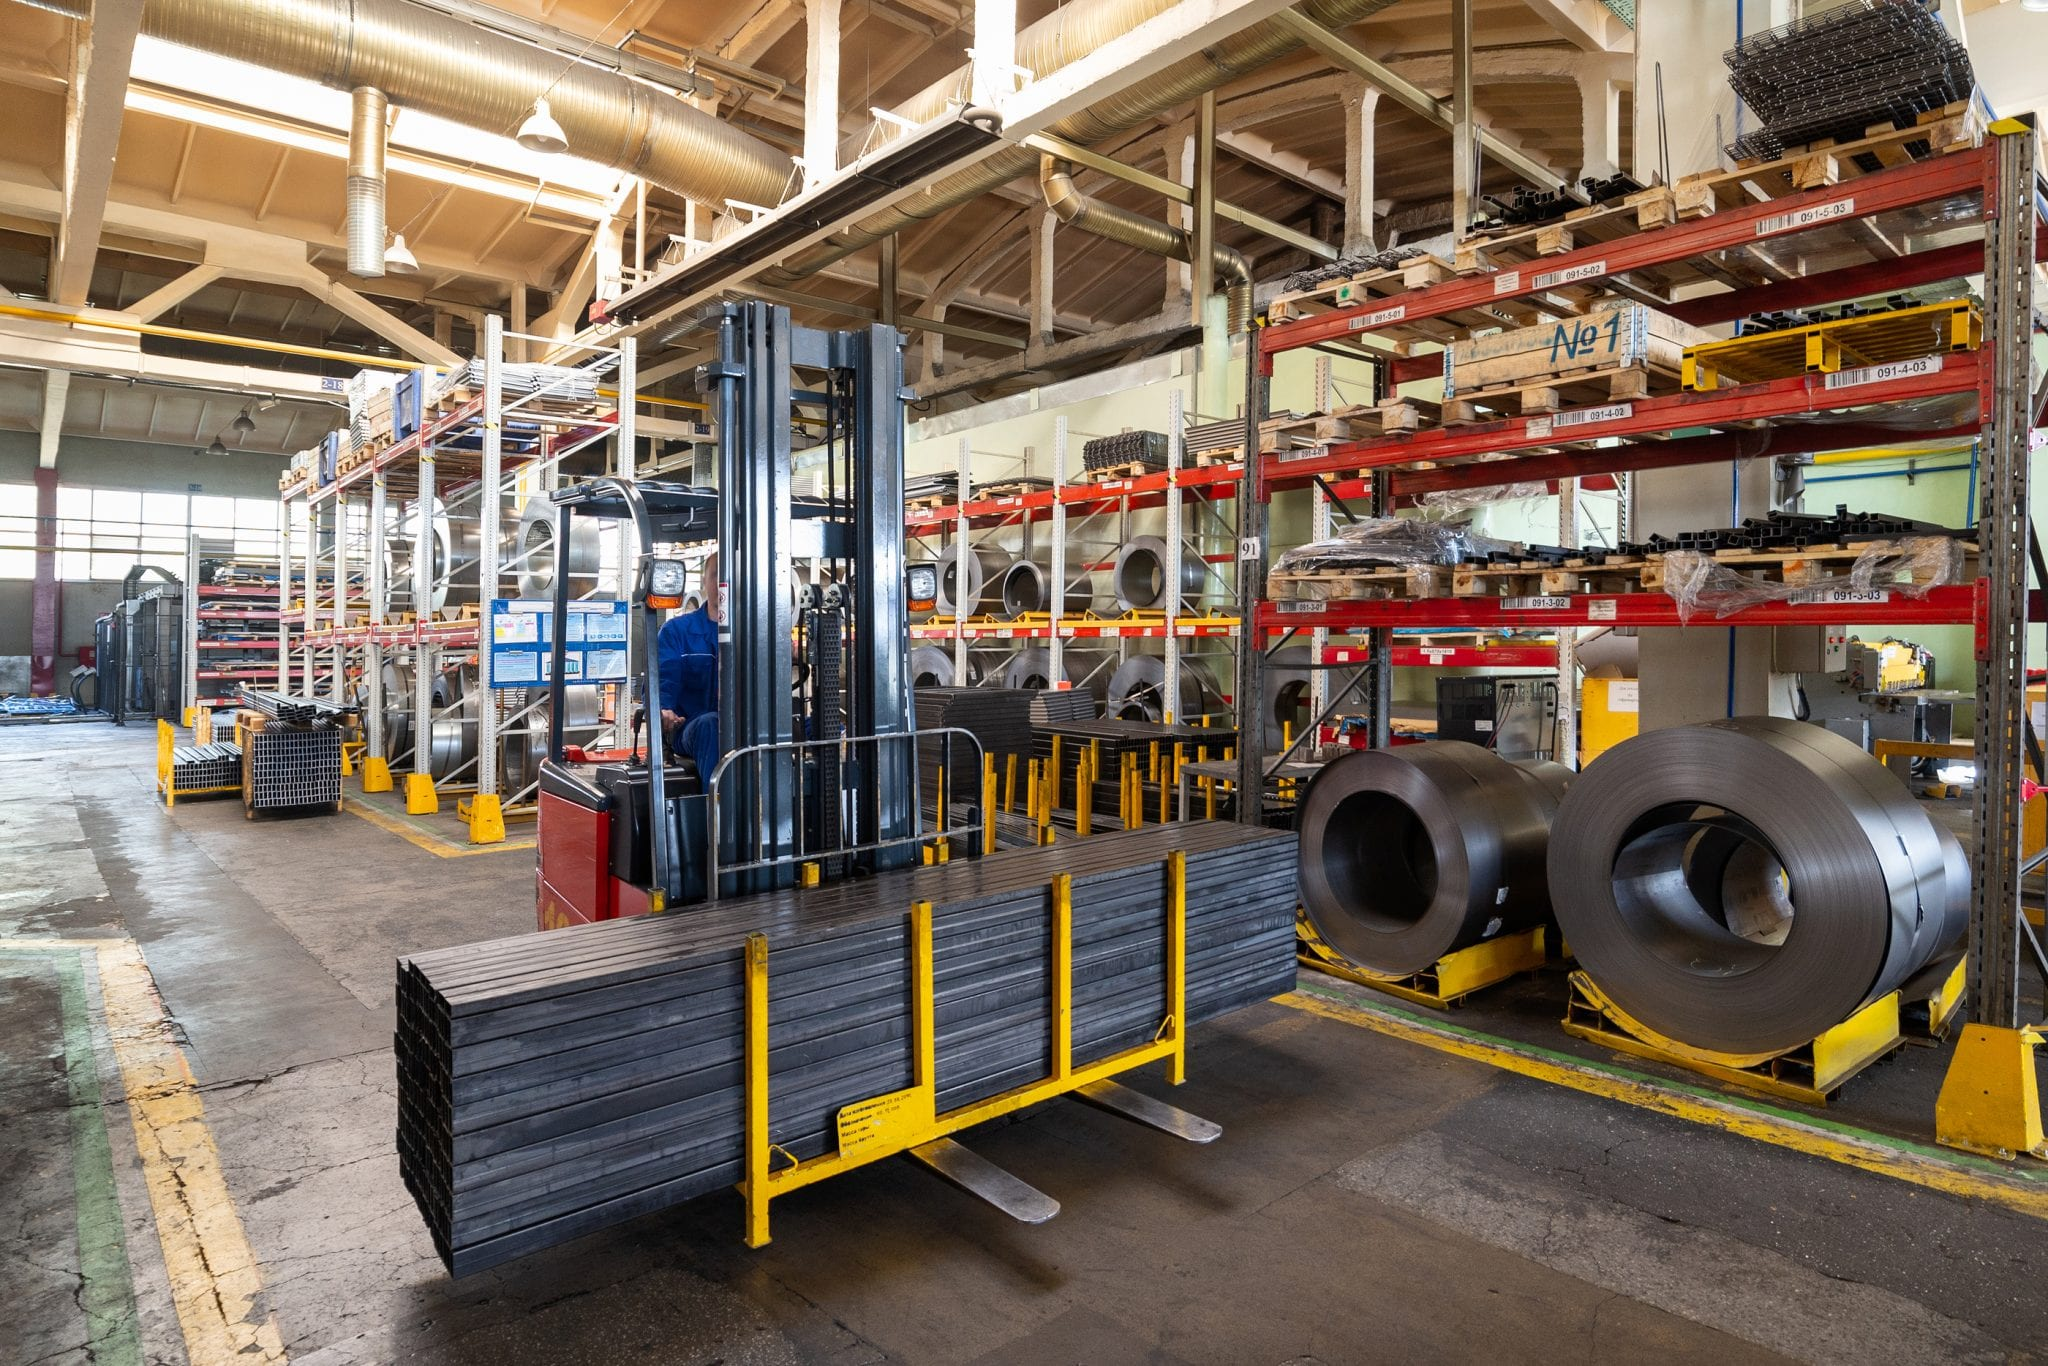 Factory stock wire. Wire rolled into coils lie on multi-tiered racks.